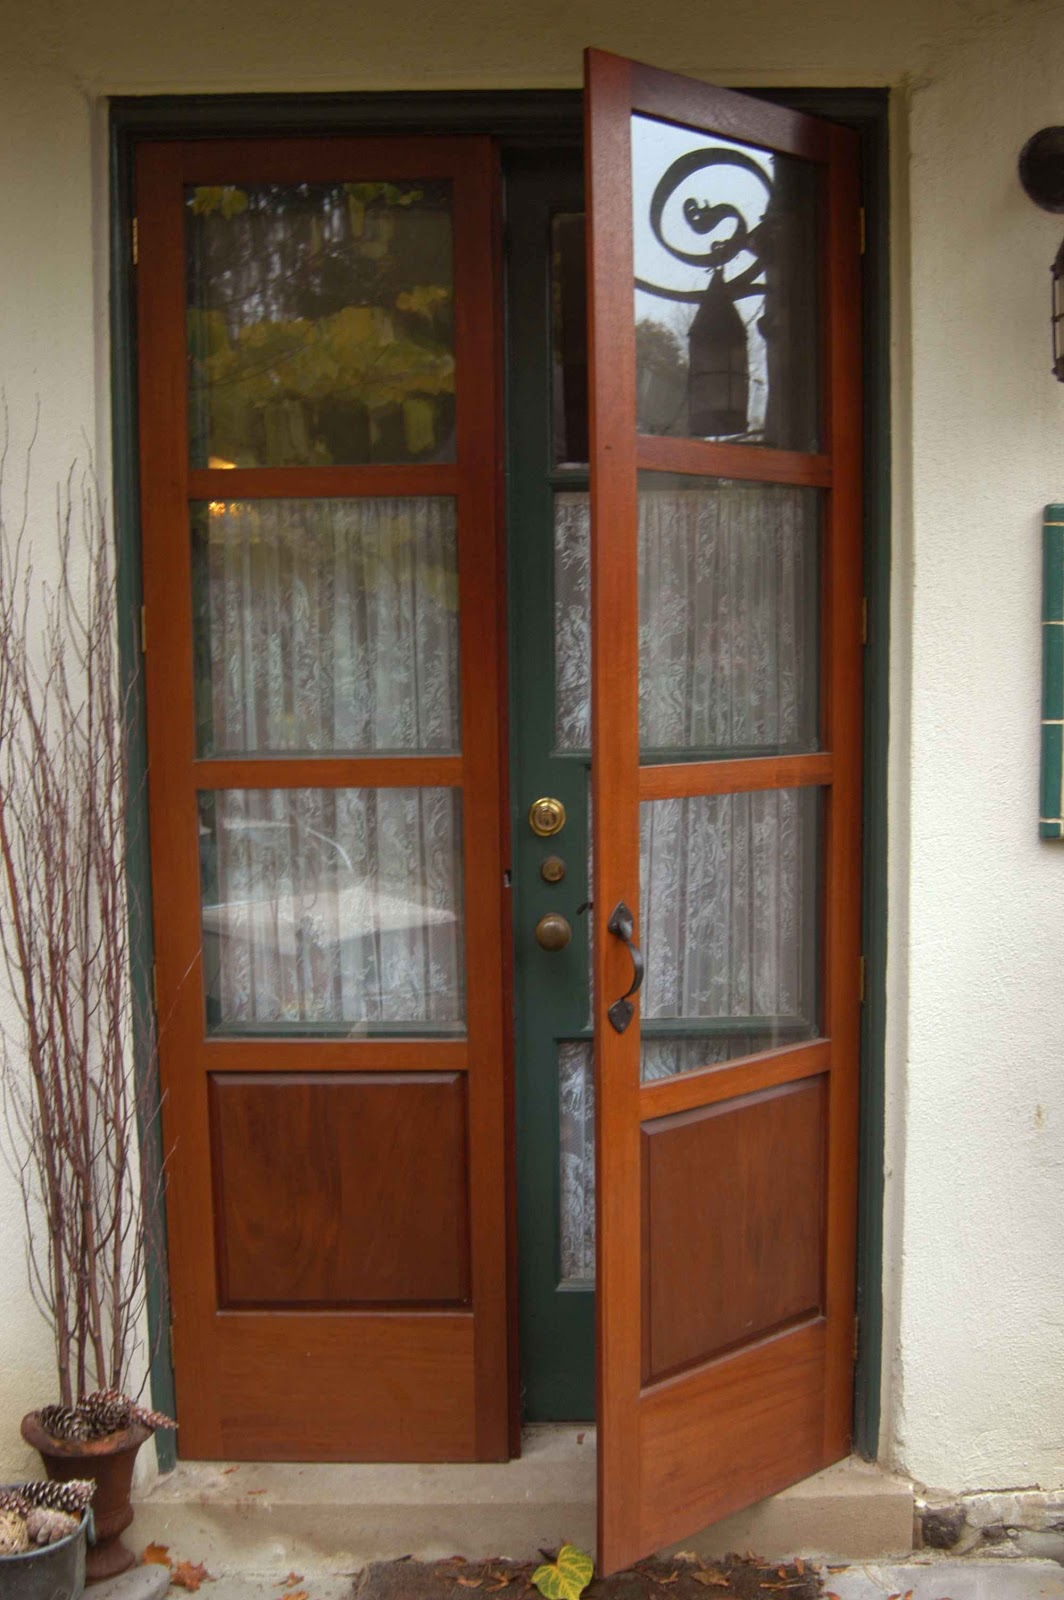 Our French Inspired Home: Exterior French Doors: Which would you ...